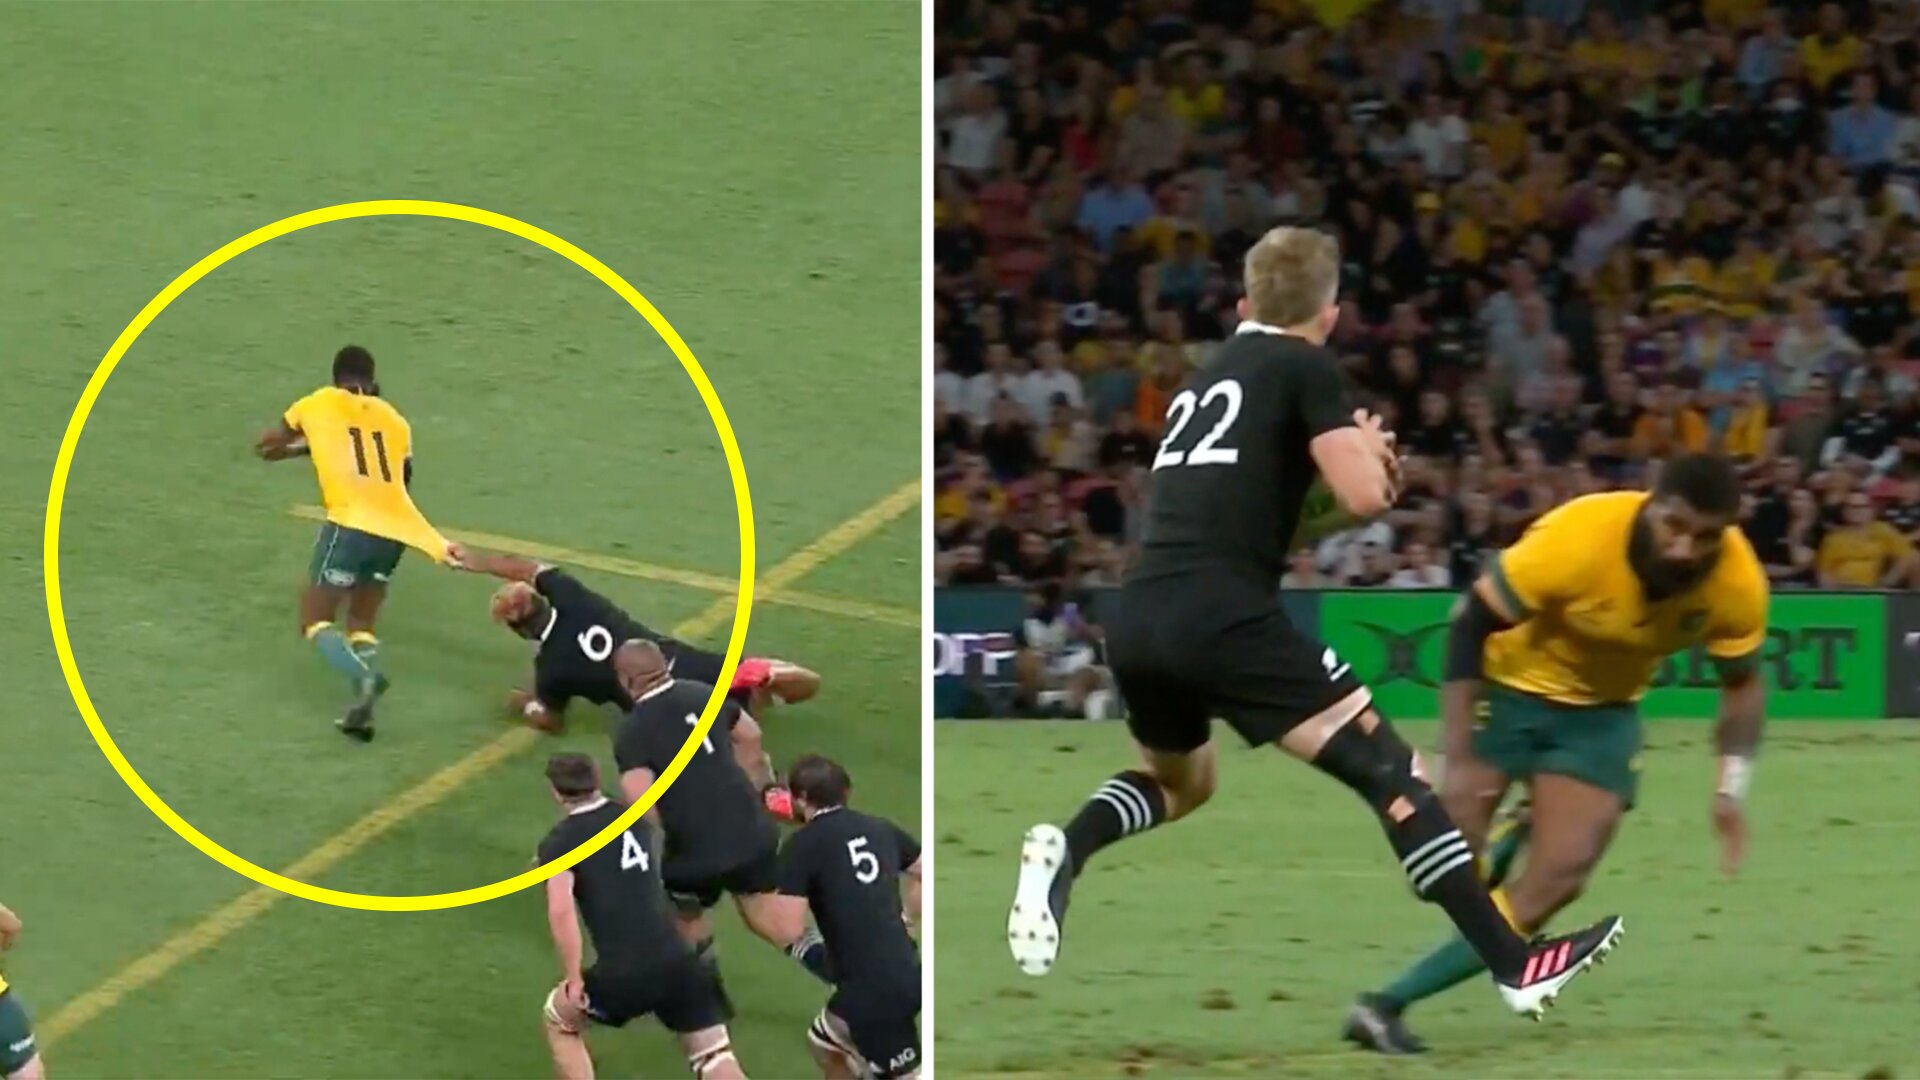 New video reveals how incredibe Marika Koroibete was against New Zealand